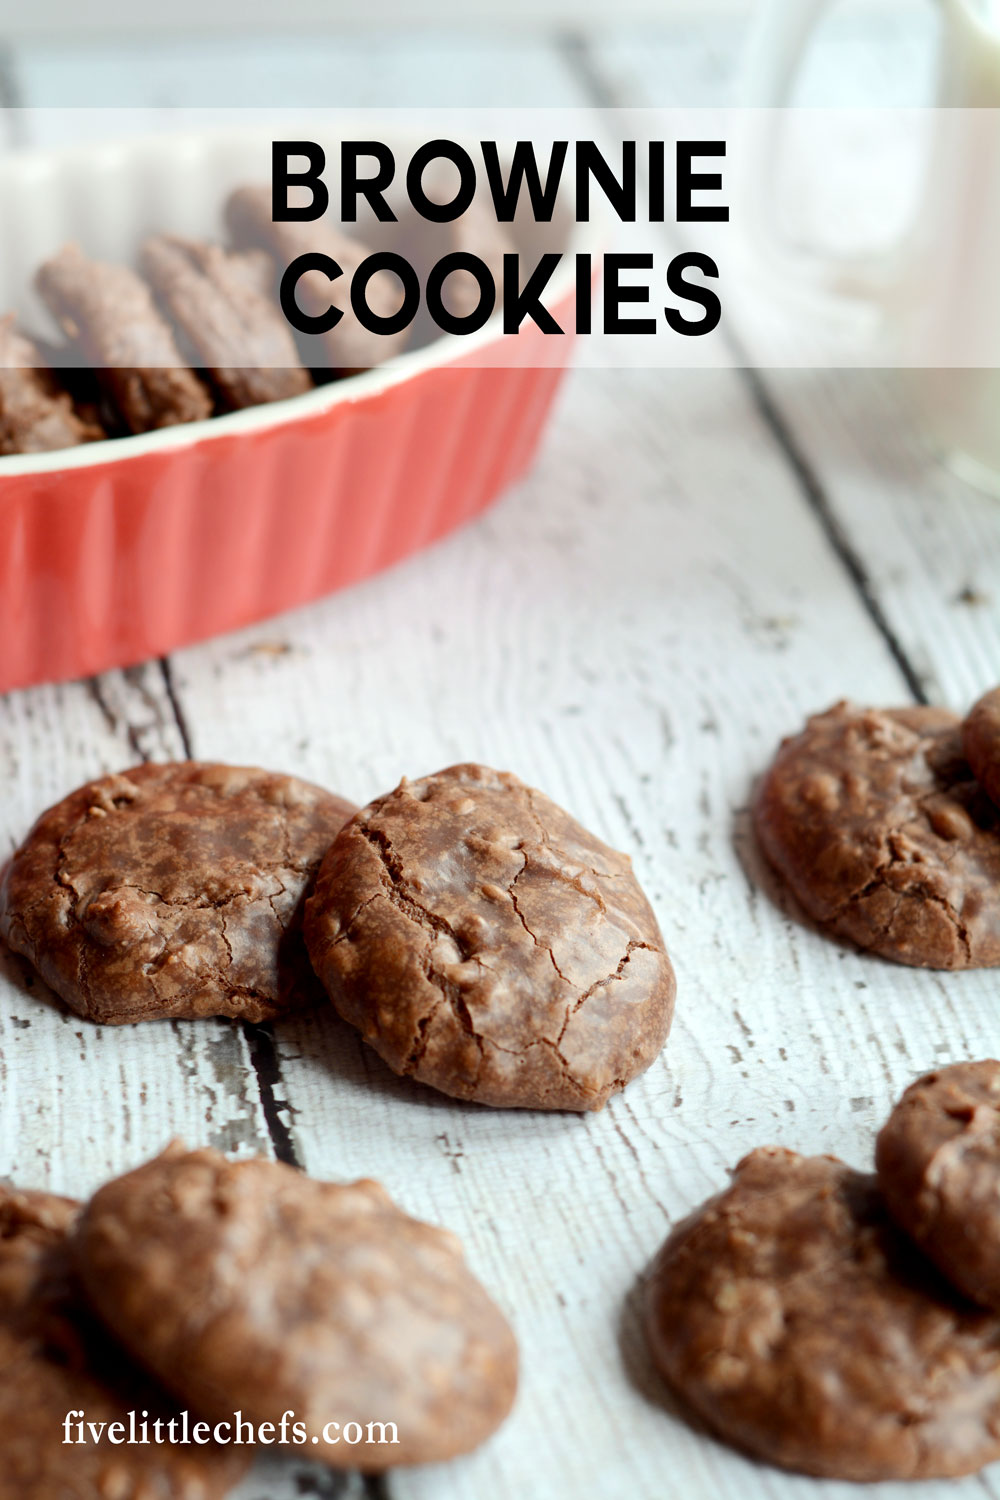 Brownie cookies are brownies and cookies all in one. If you love the chewy, chocolate corners of the brownie pan you will love these brownie cookies. This from scratch recipe is easy and fast. You will need to make a second batch!